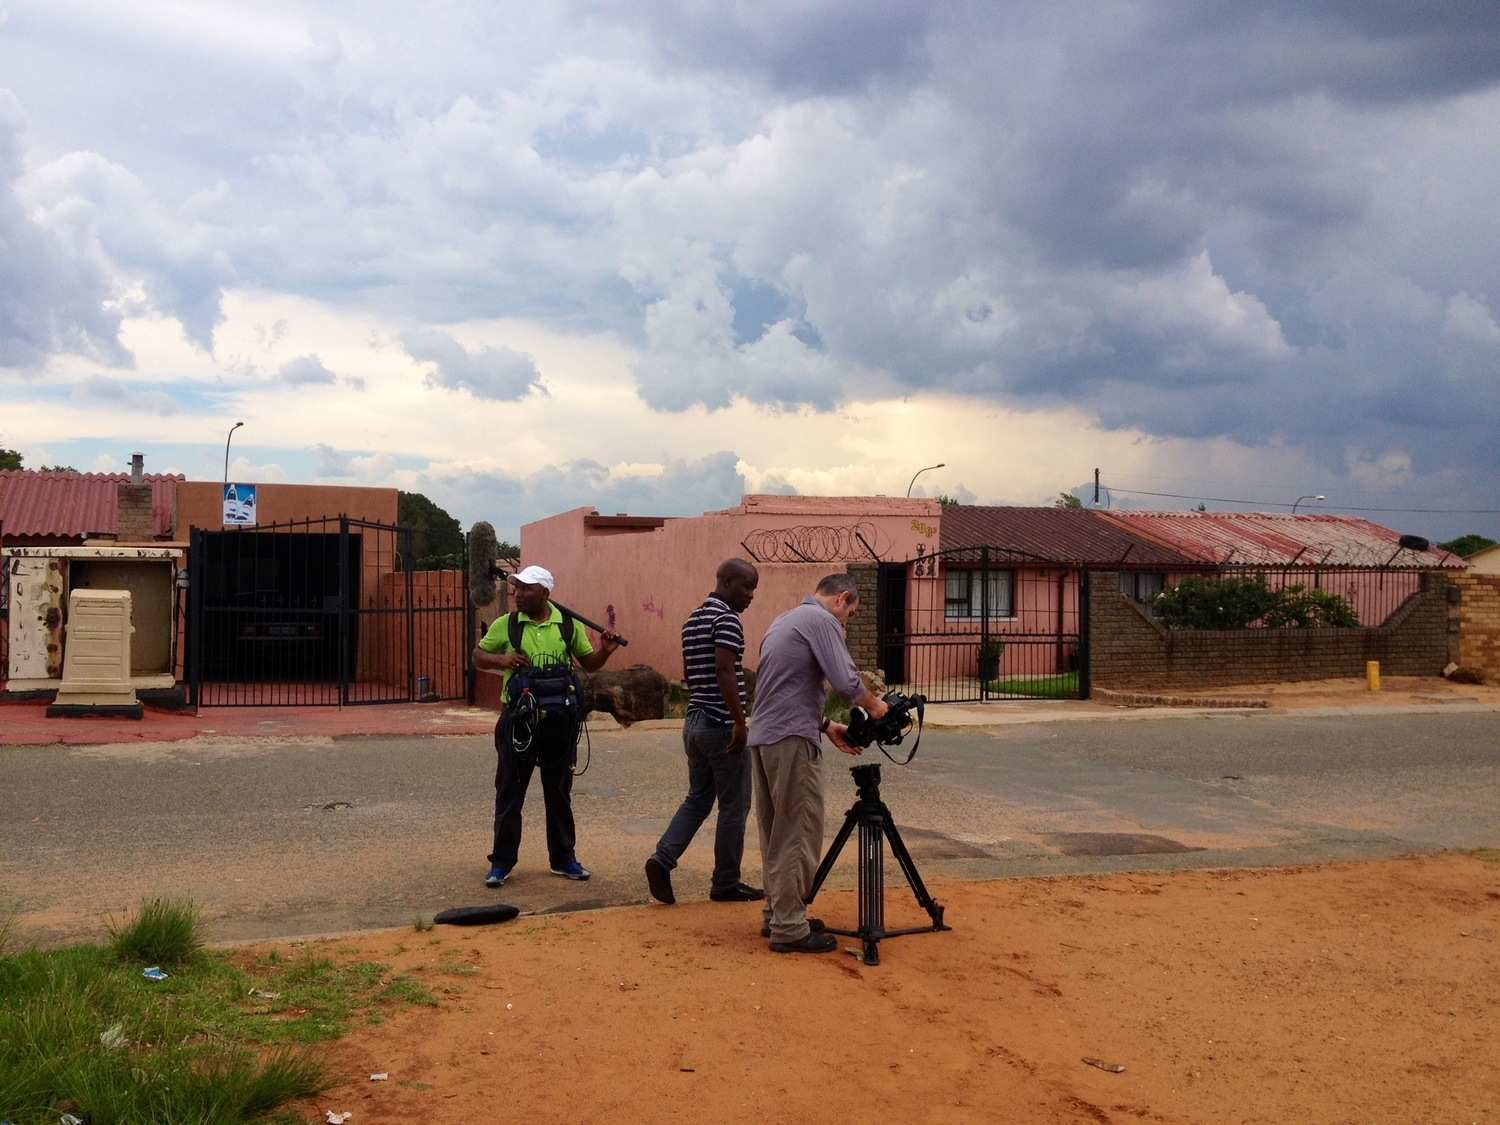 Crew filming in Soweto November 2012